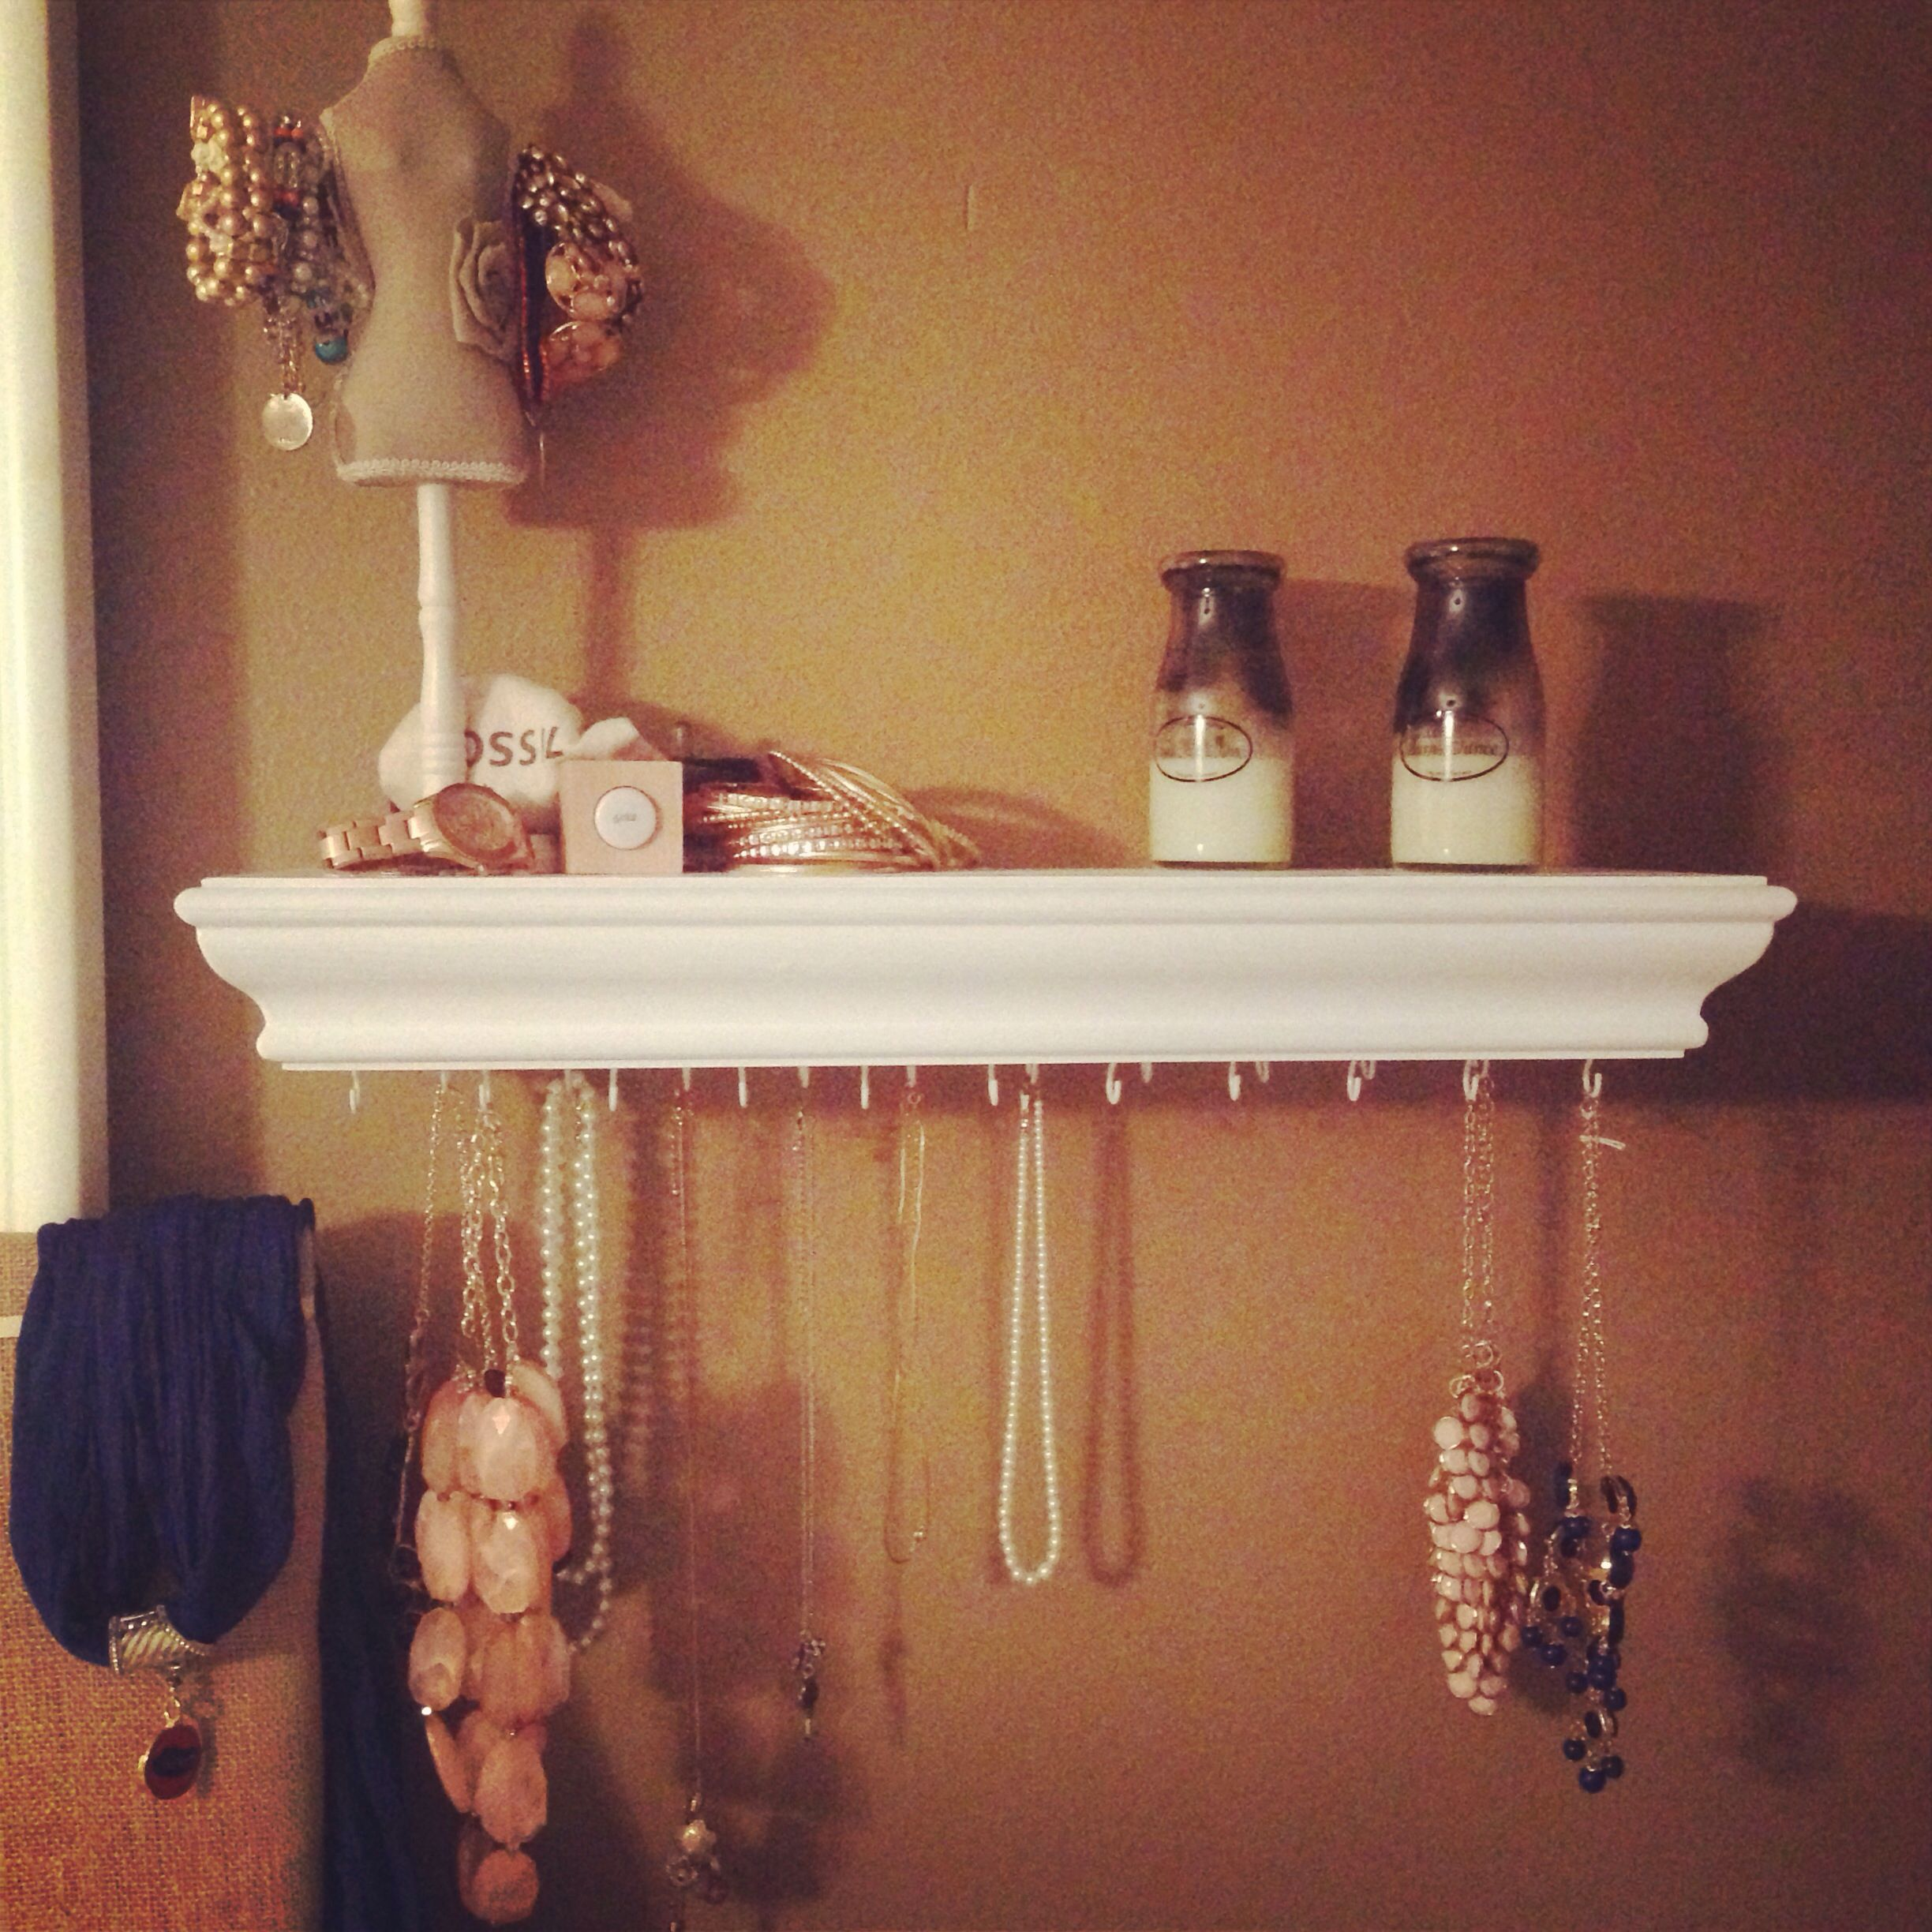 Best 25 Teepees Ideas On Pinterest: Best 25+ Jewelry Organization Ideas On Pinterest